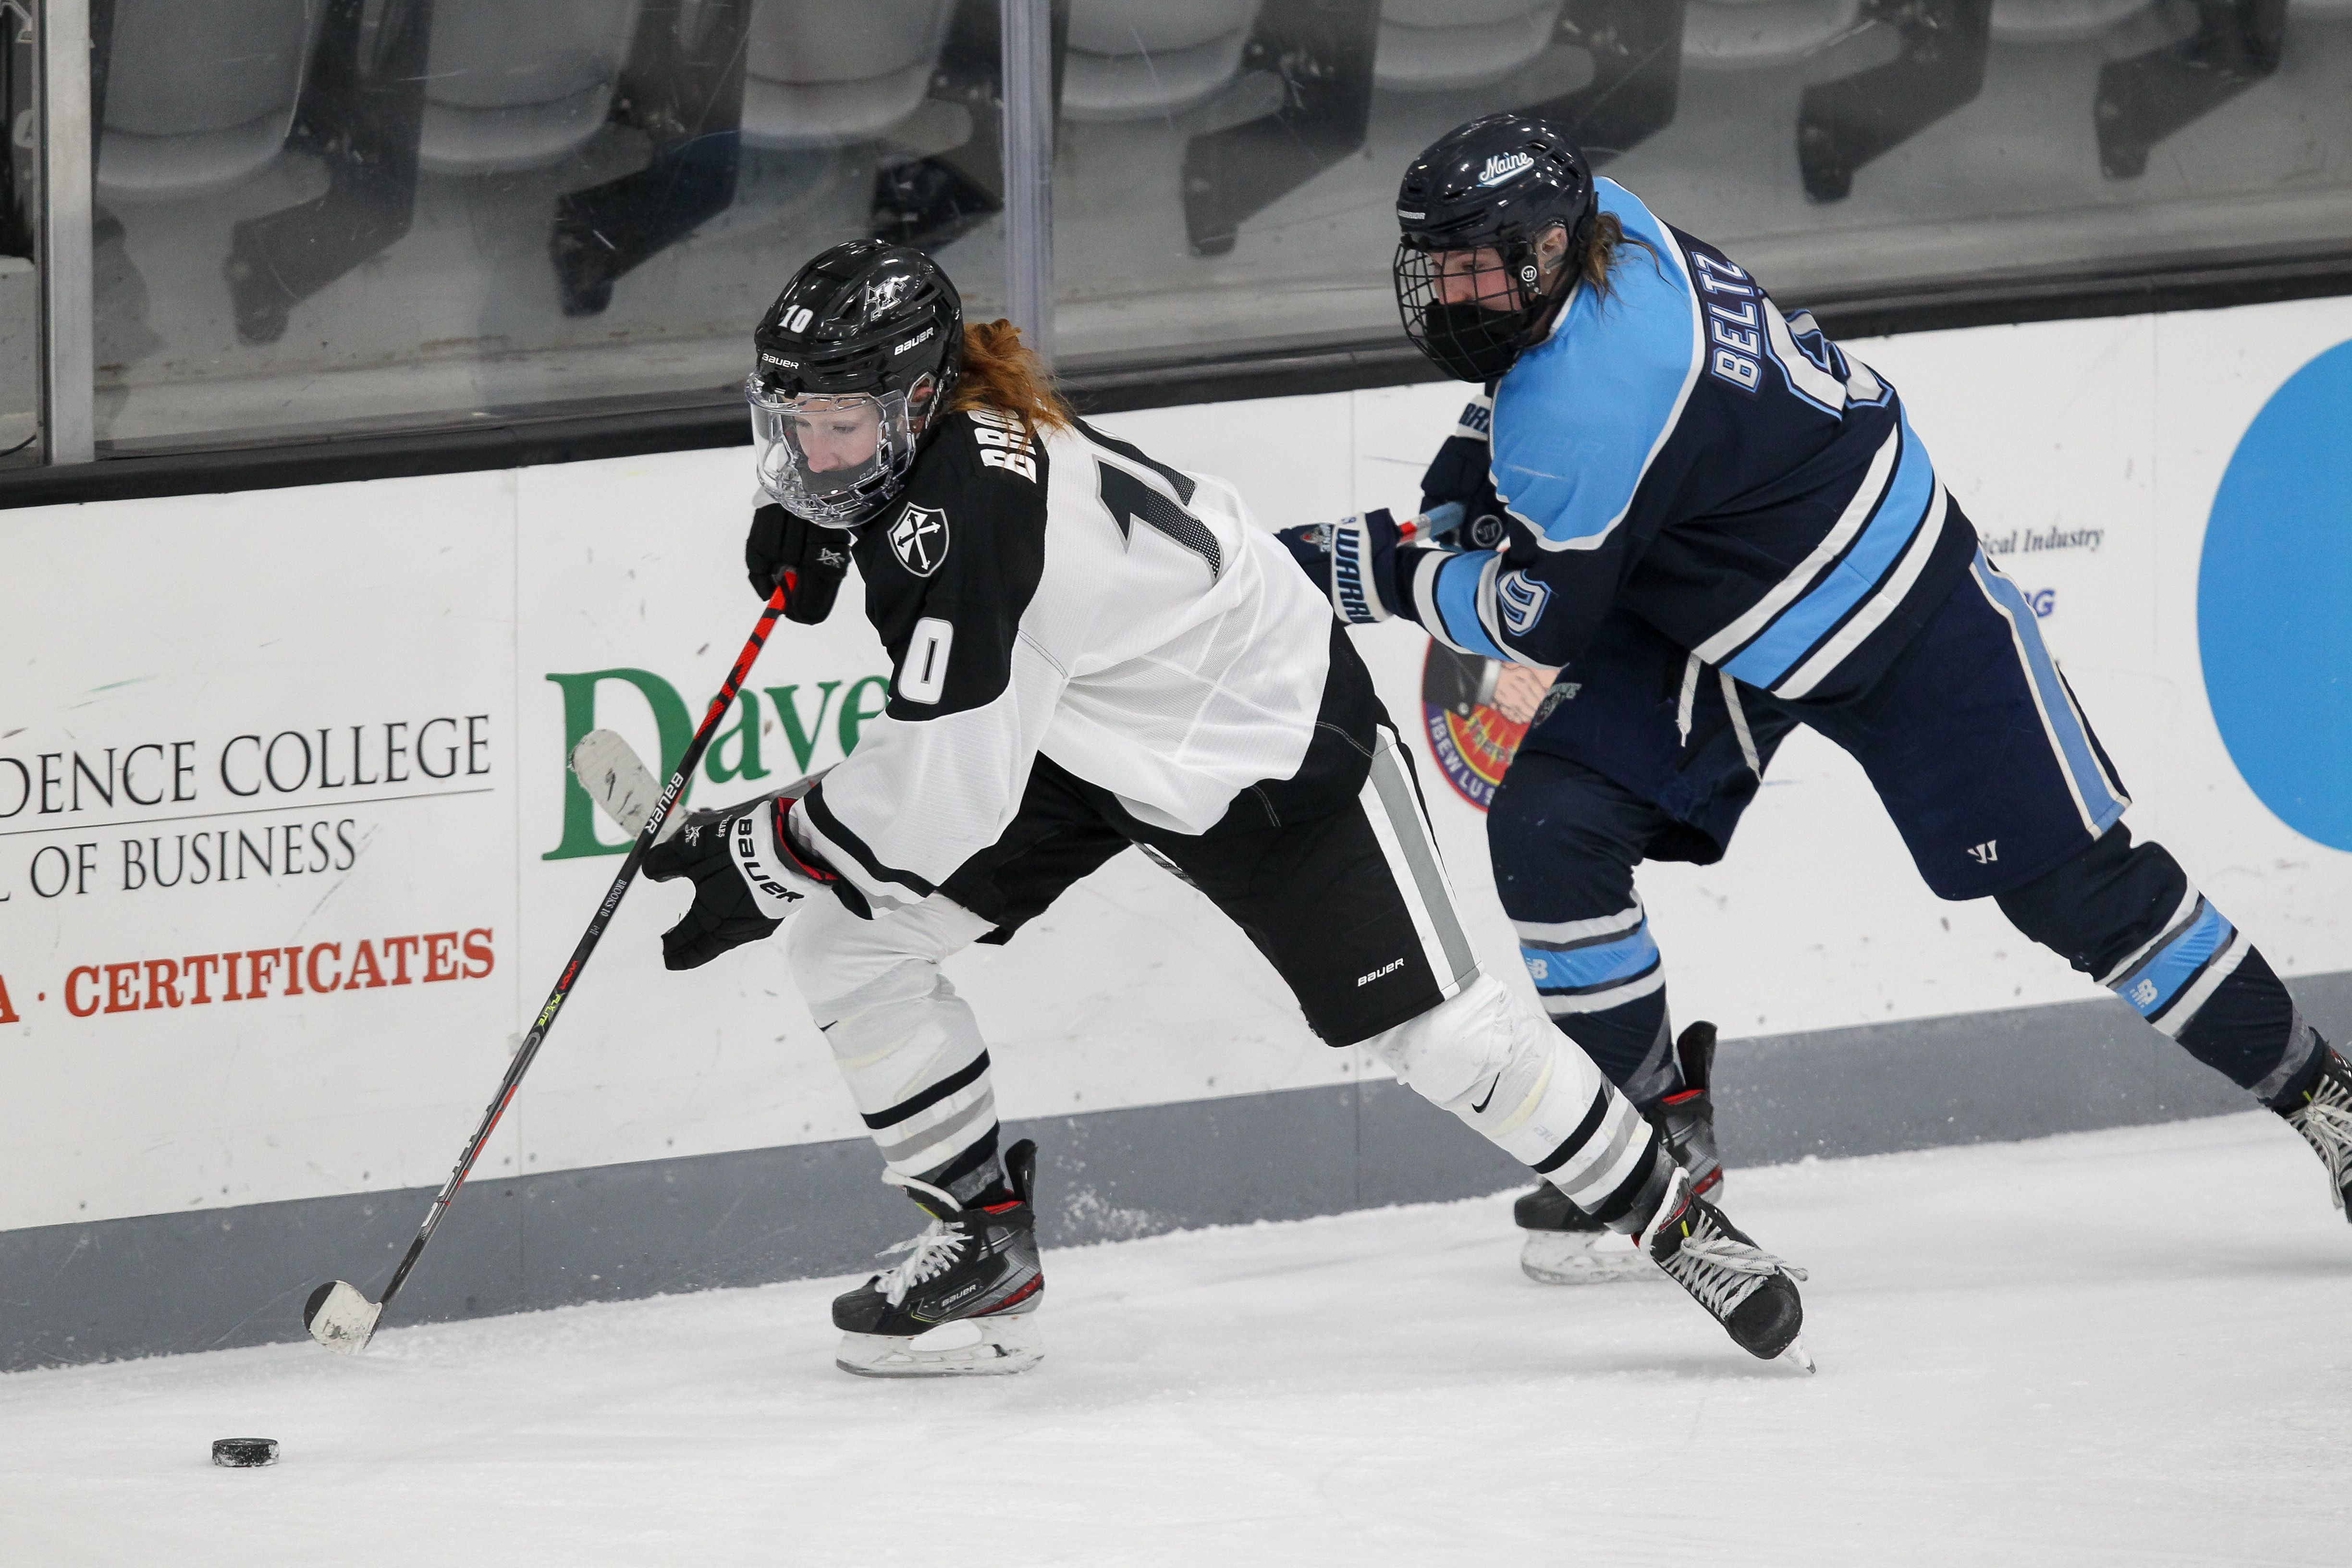 KC Brooks (left) experienced a special season for Providence women's hockey. The Friars appeared in their first Hockey East final since 2012 and received their first NCAA tournament bid in more than 15 years. Photo courtesy of Providence College Athletics